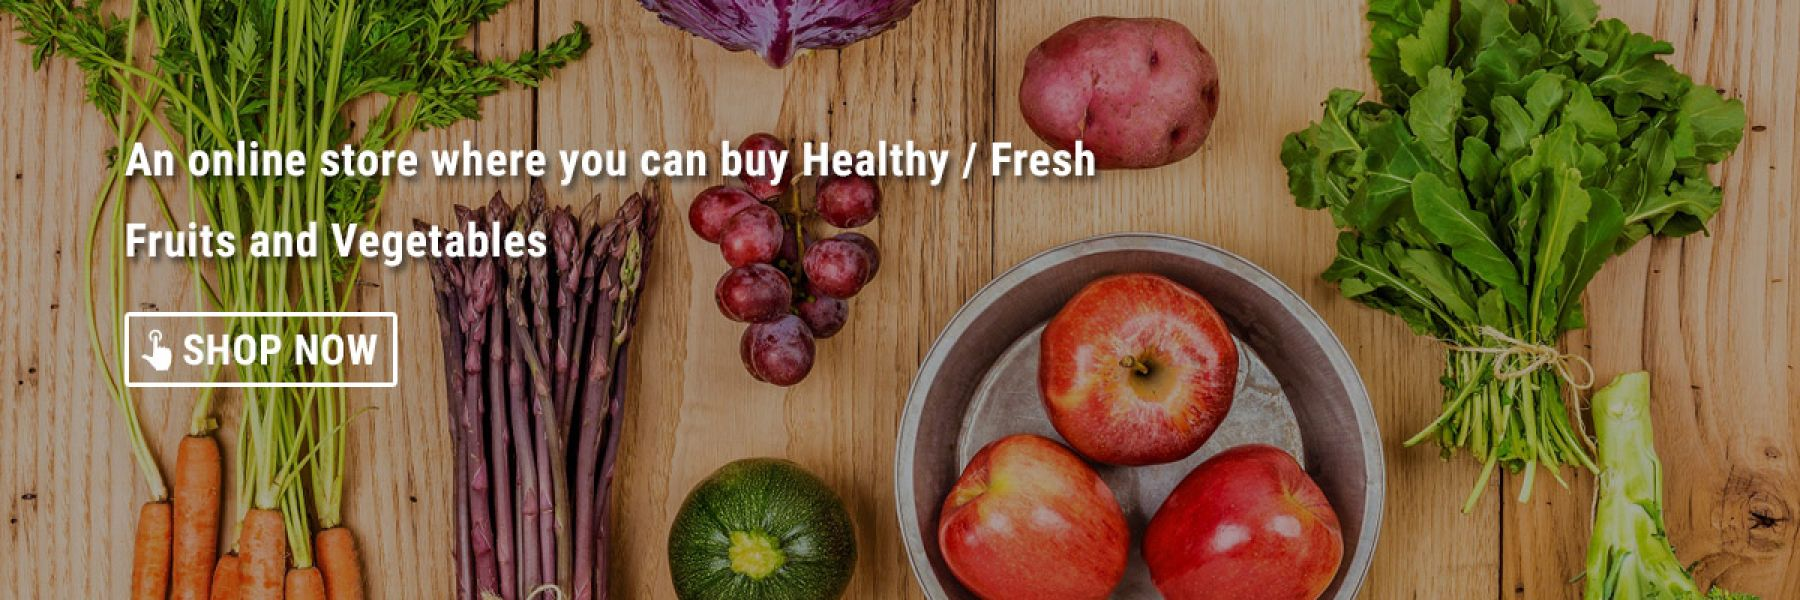 Dinefresh | Safe To Eat | Pesticide Free Fruits & Vegetables | Healthy Food Concepts | Home Delivery